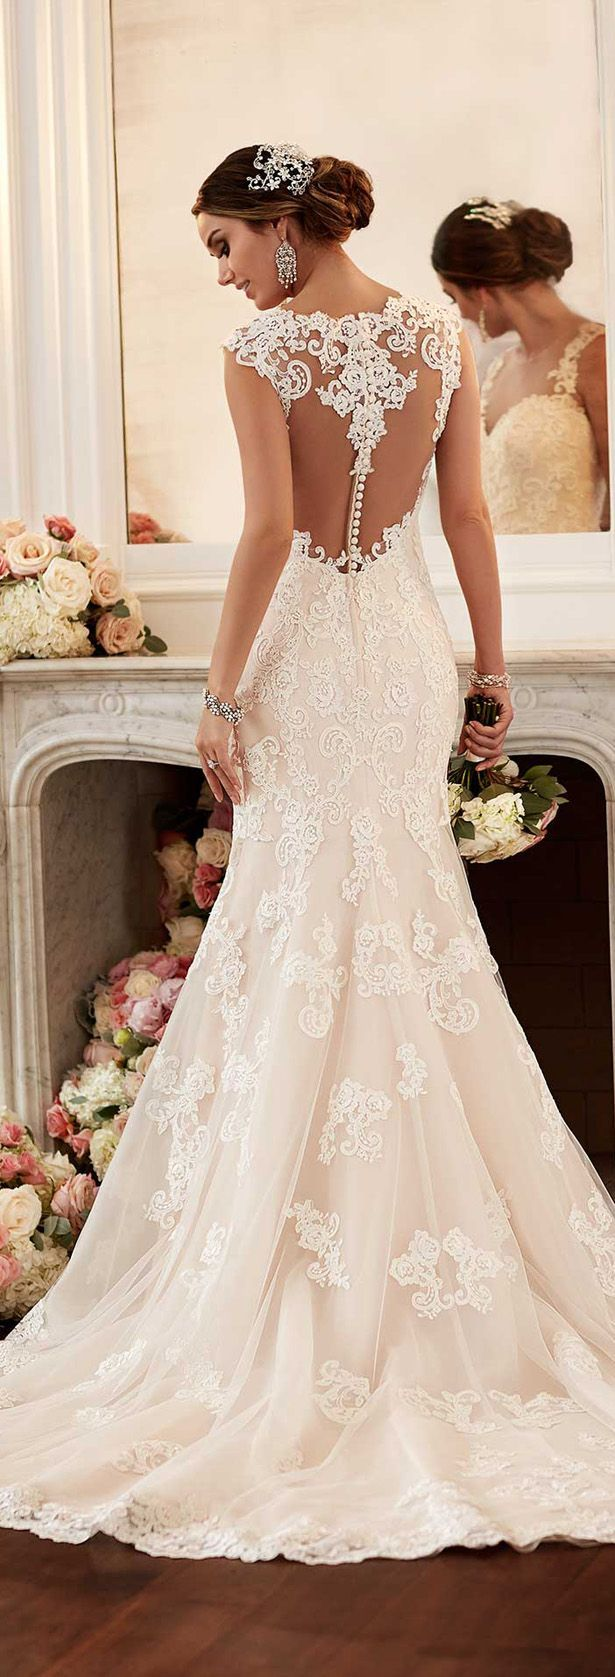 Best 25 wedding dresses ideas on pinterest lace wedding dresses mesmerizing wedding dress ideas that would make you a fairy princess junglespirit Choice Image